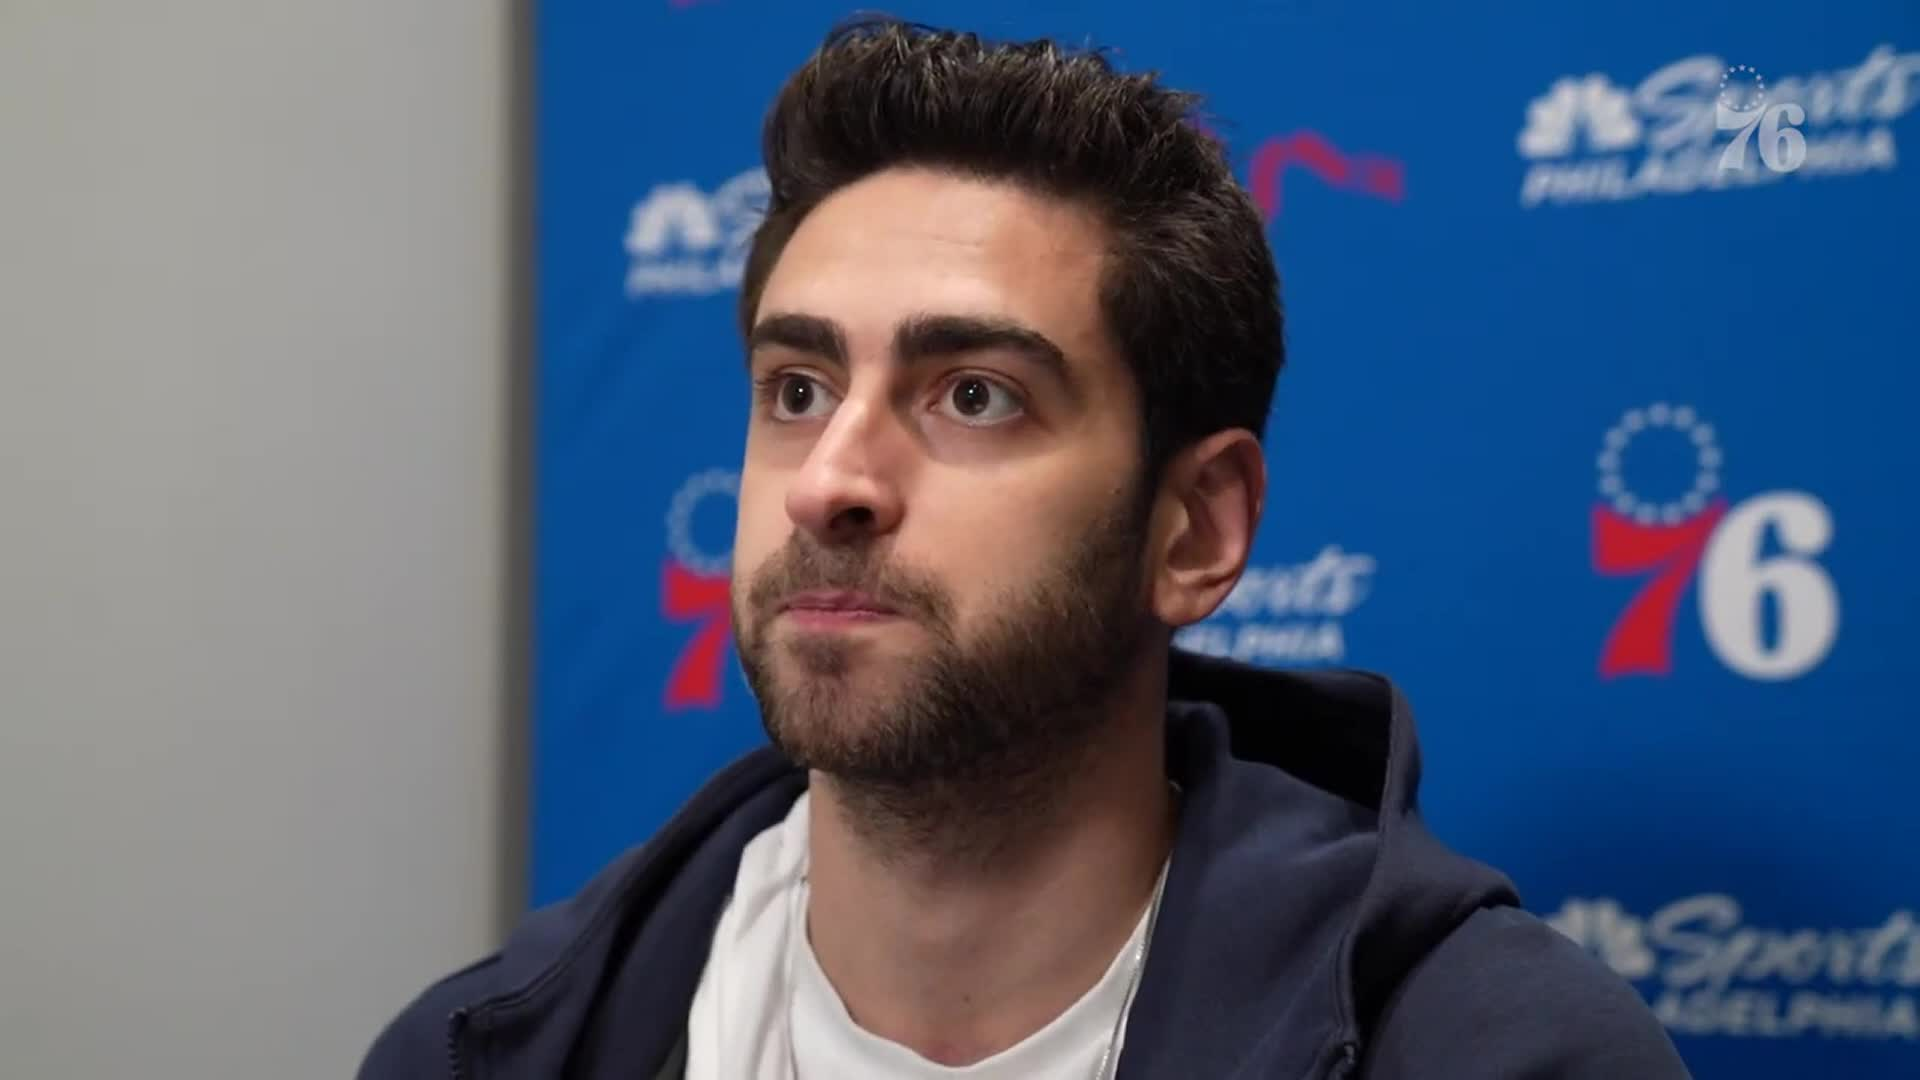 Furkan Korkmaz | Postgame Media @ Boston Celtics (04.06.21)